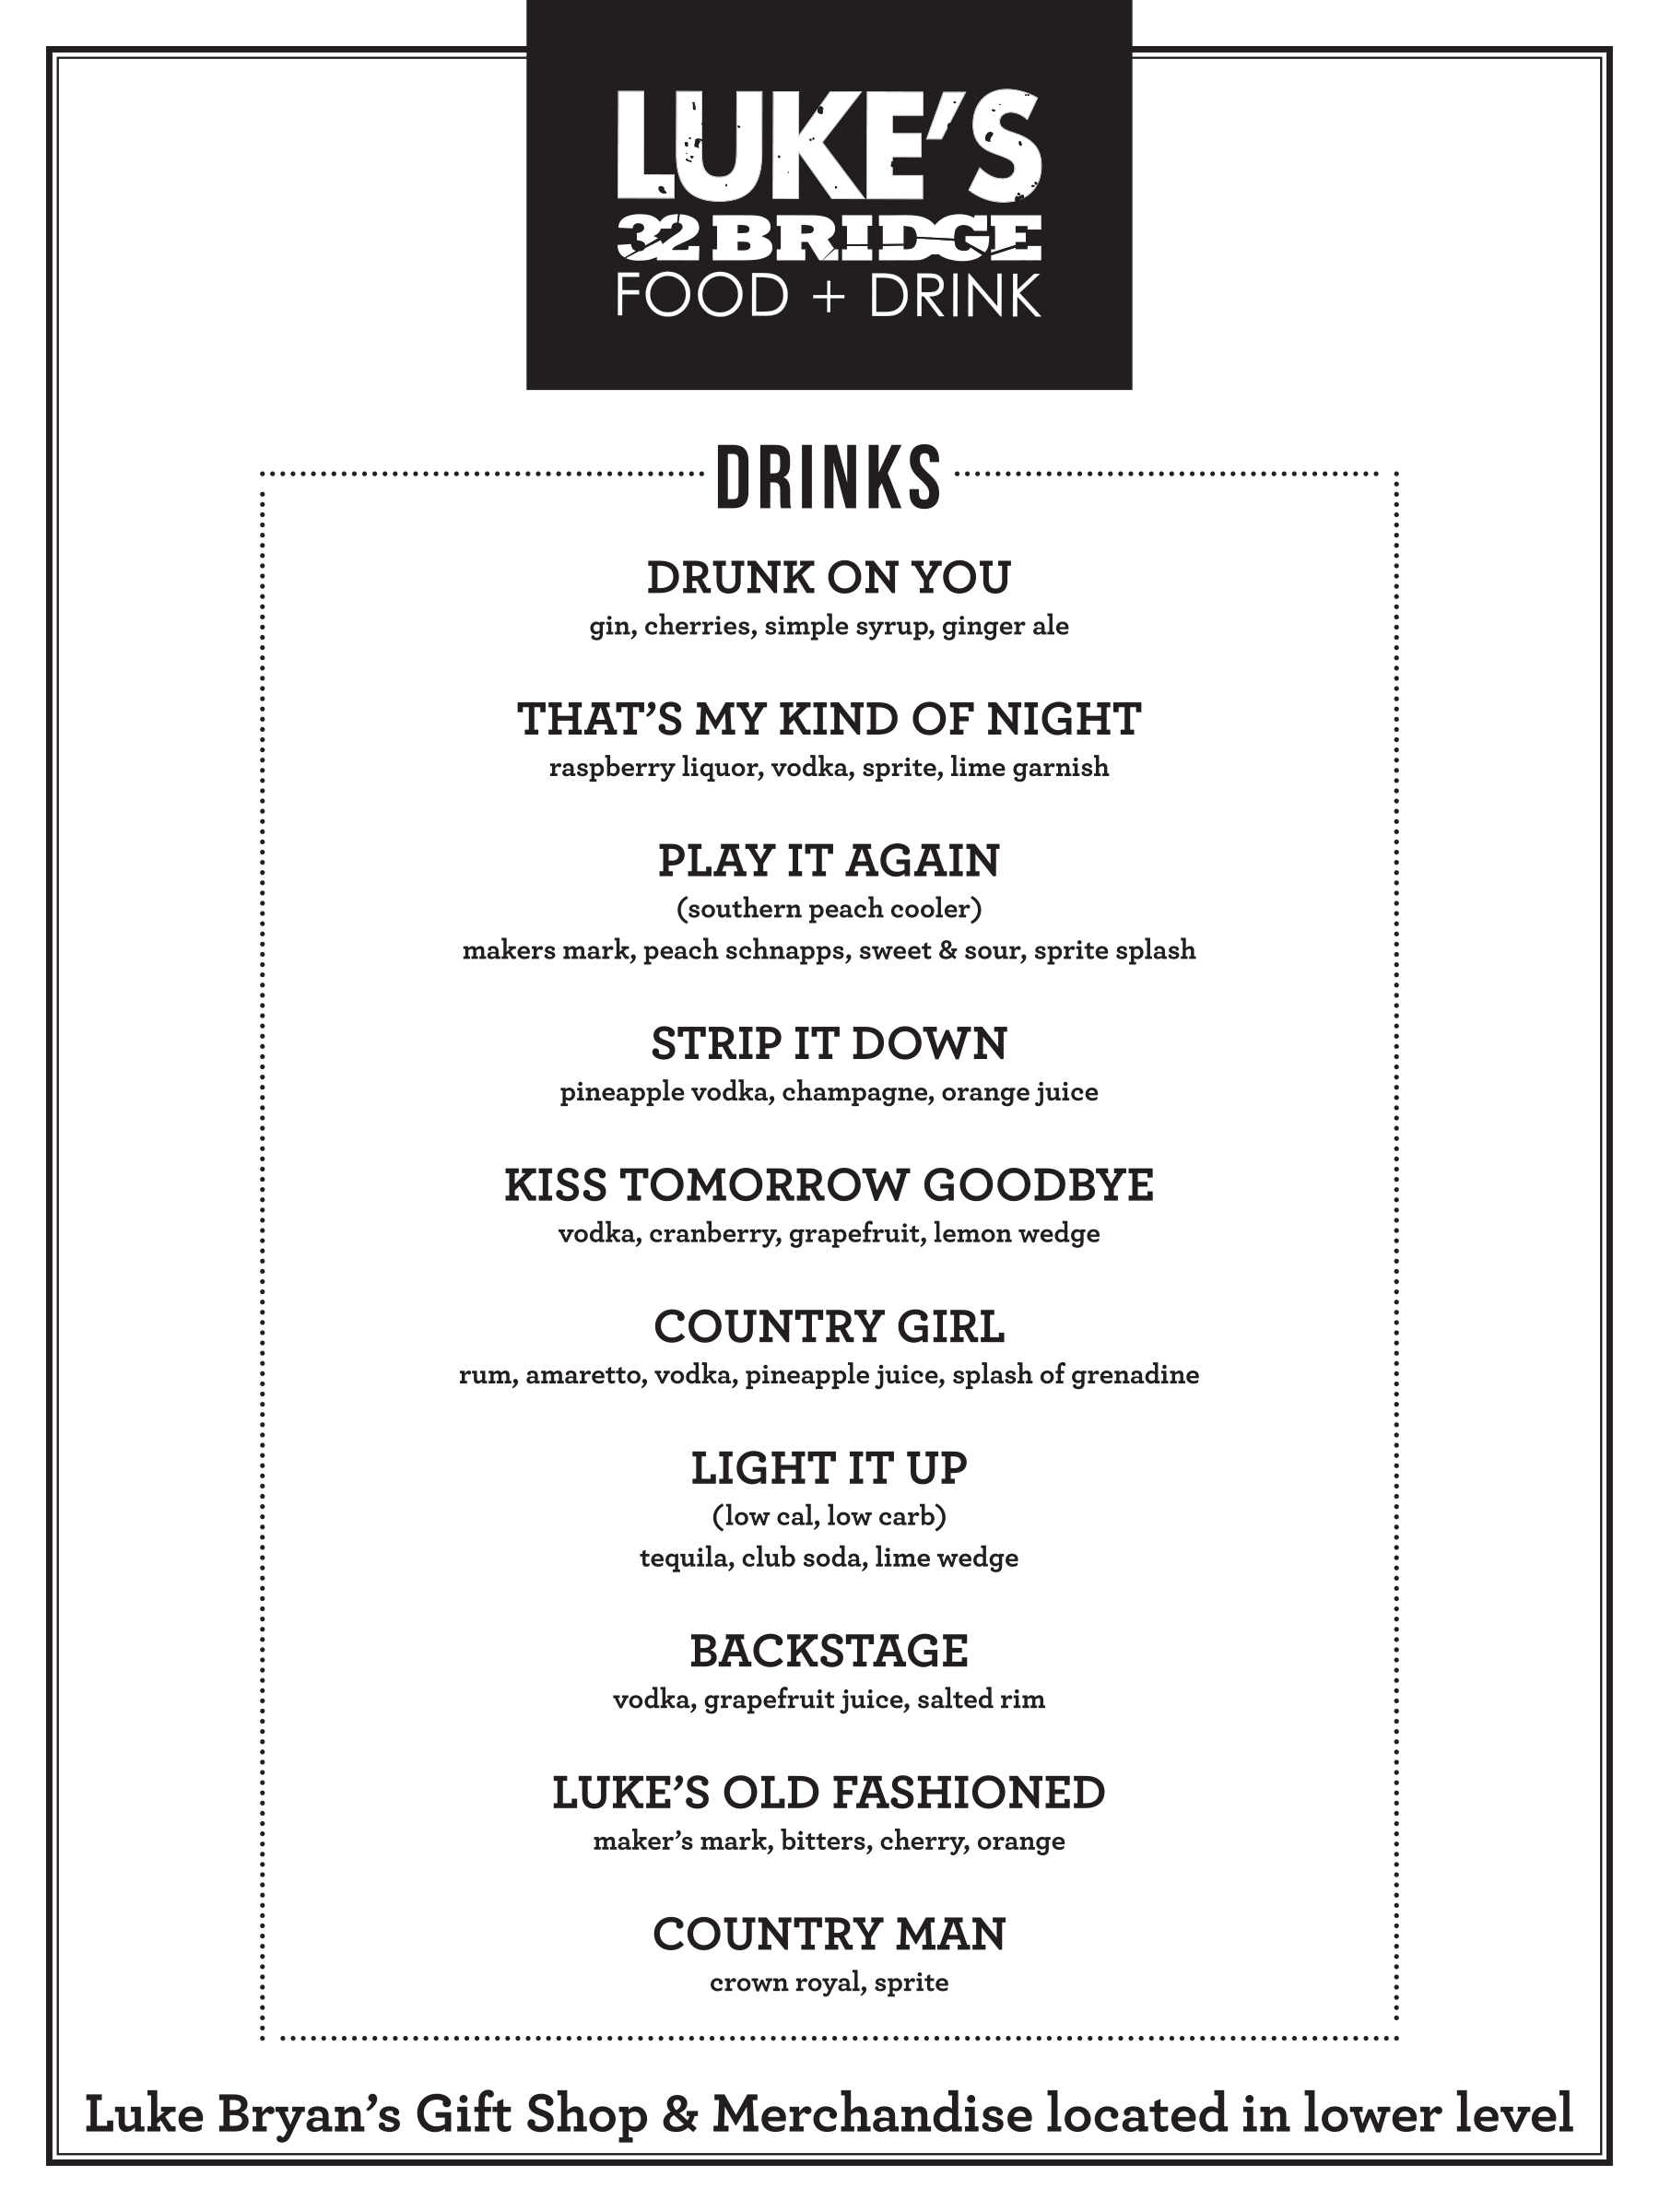 Lukes Drink Menu